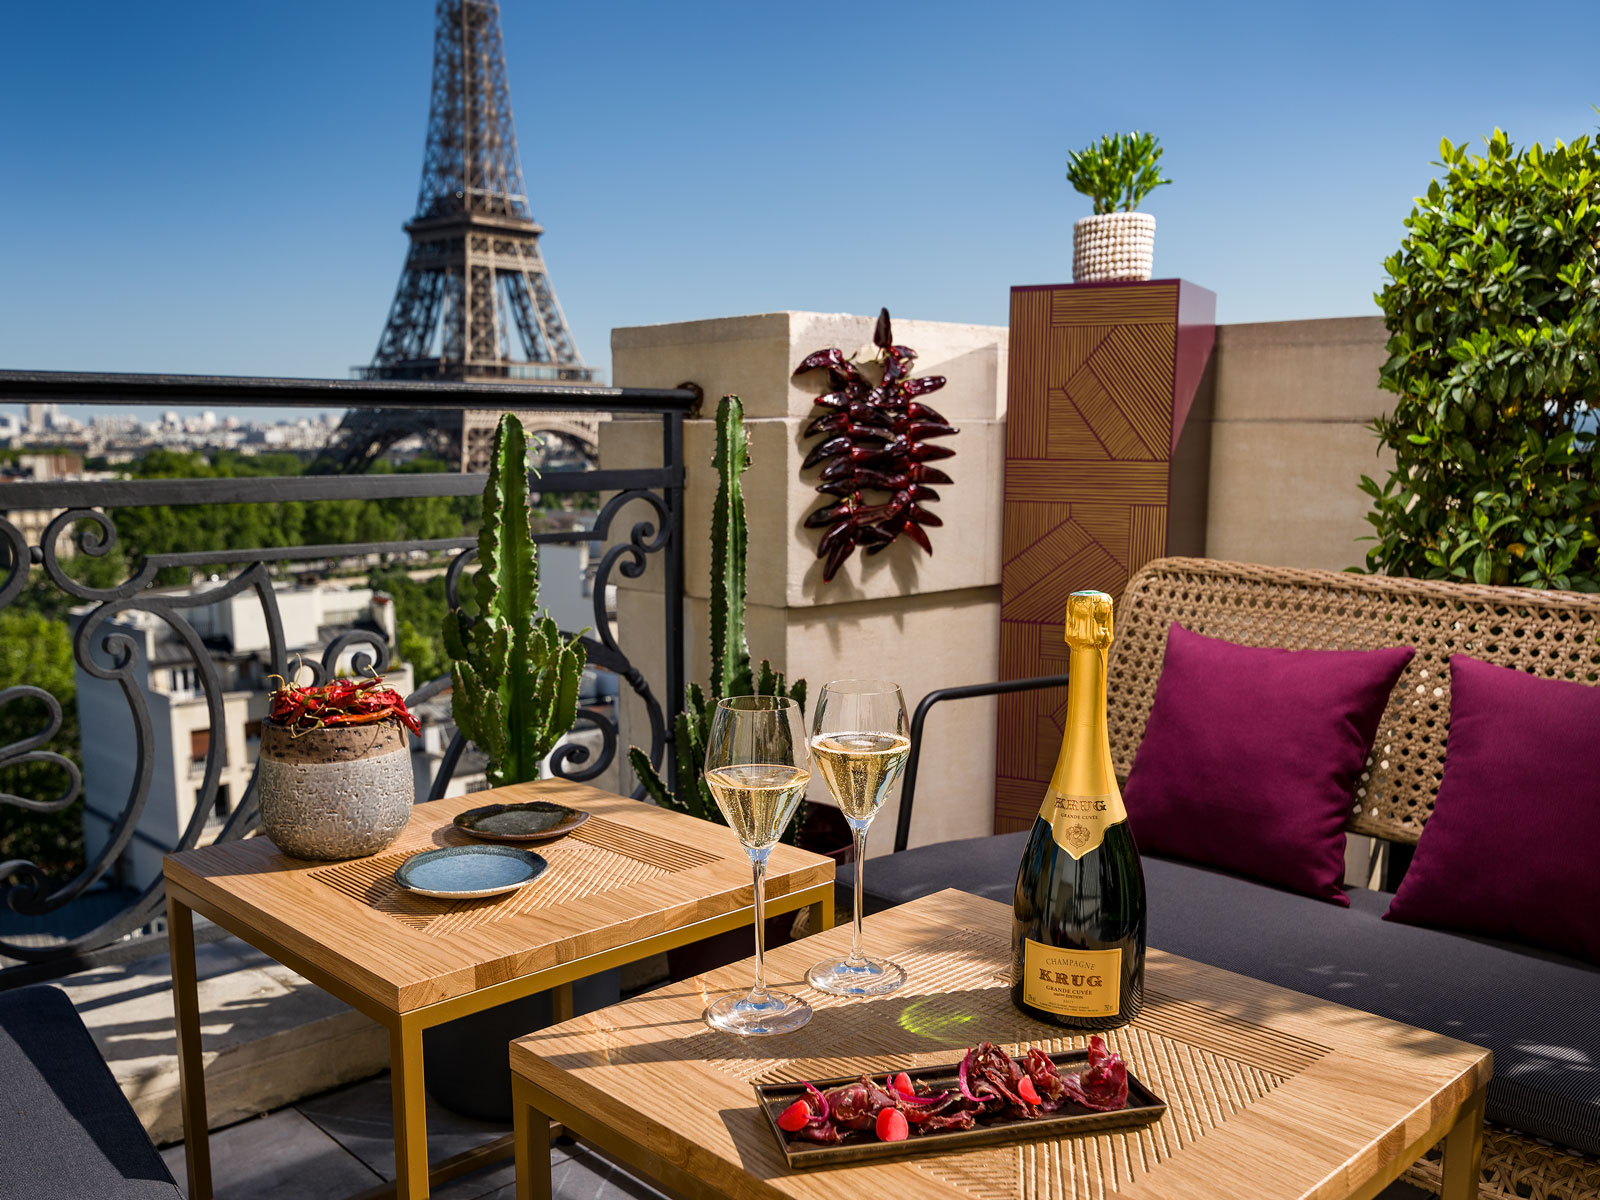 This Pop-Up Rooftop Bar Lets You Sip Champagne with Crazy Eiffel Tower Views